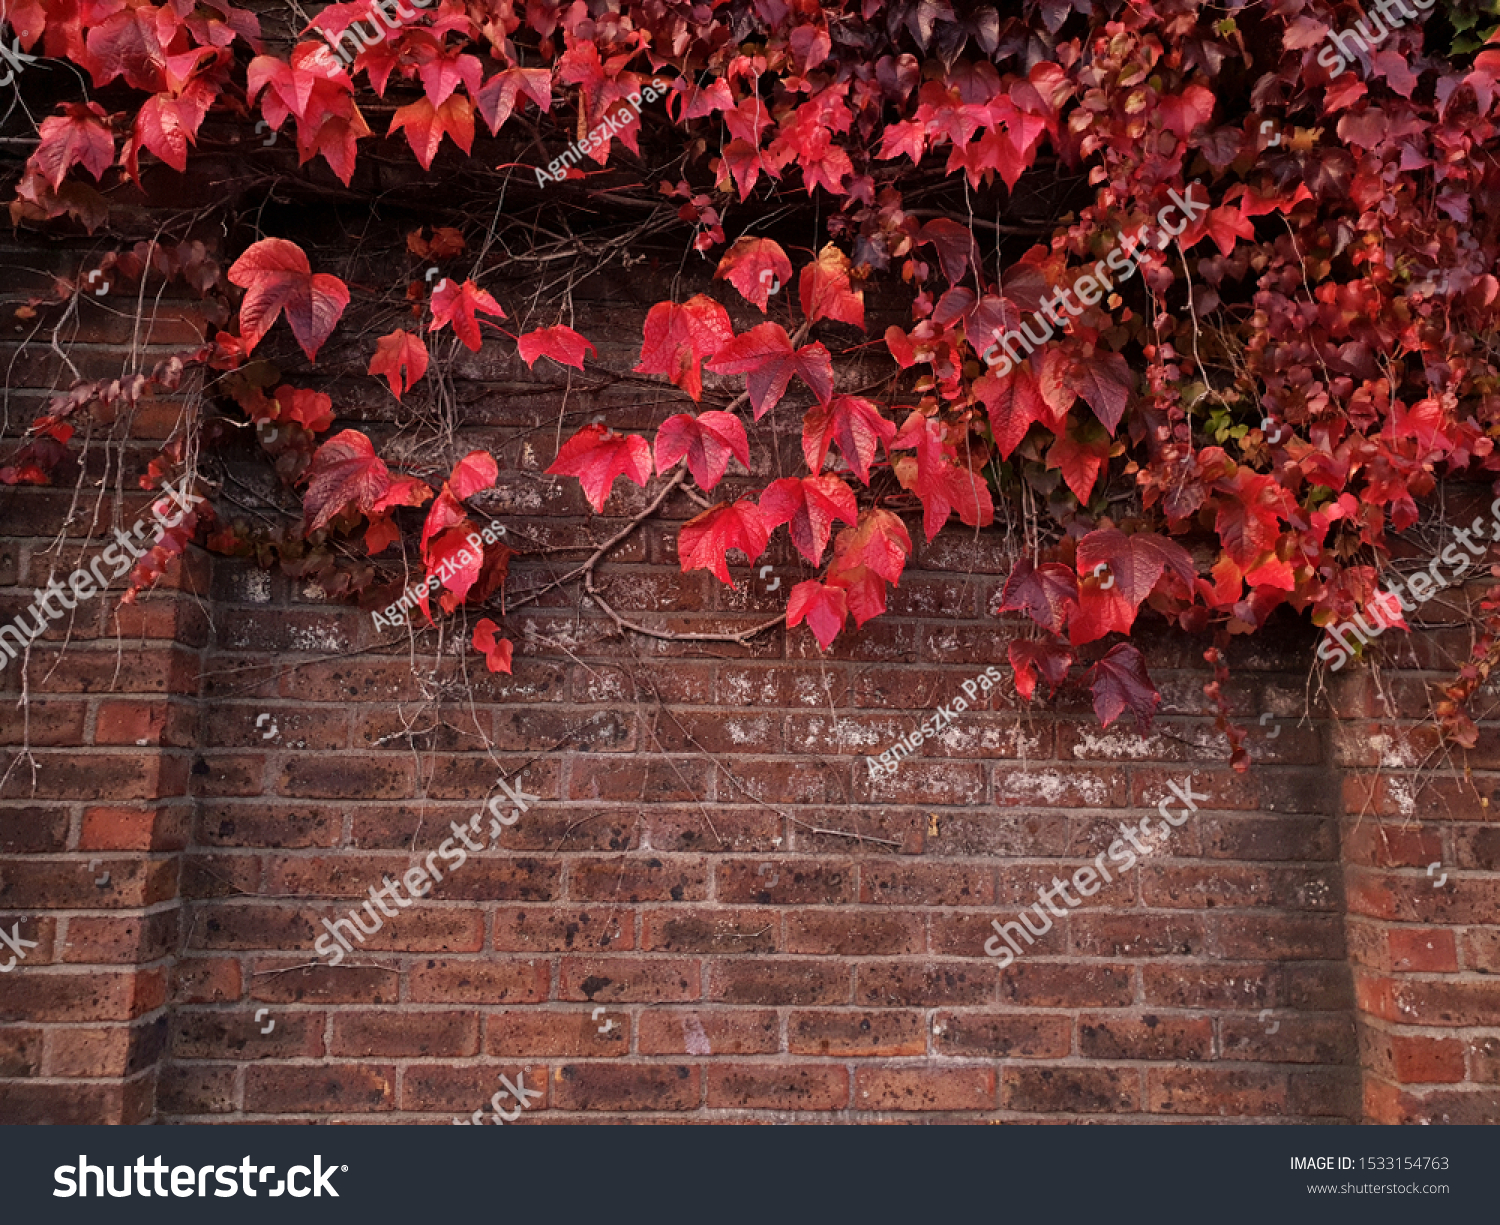 stock-photo-autumn-background-with-red-l